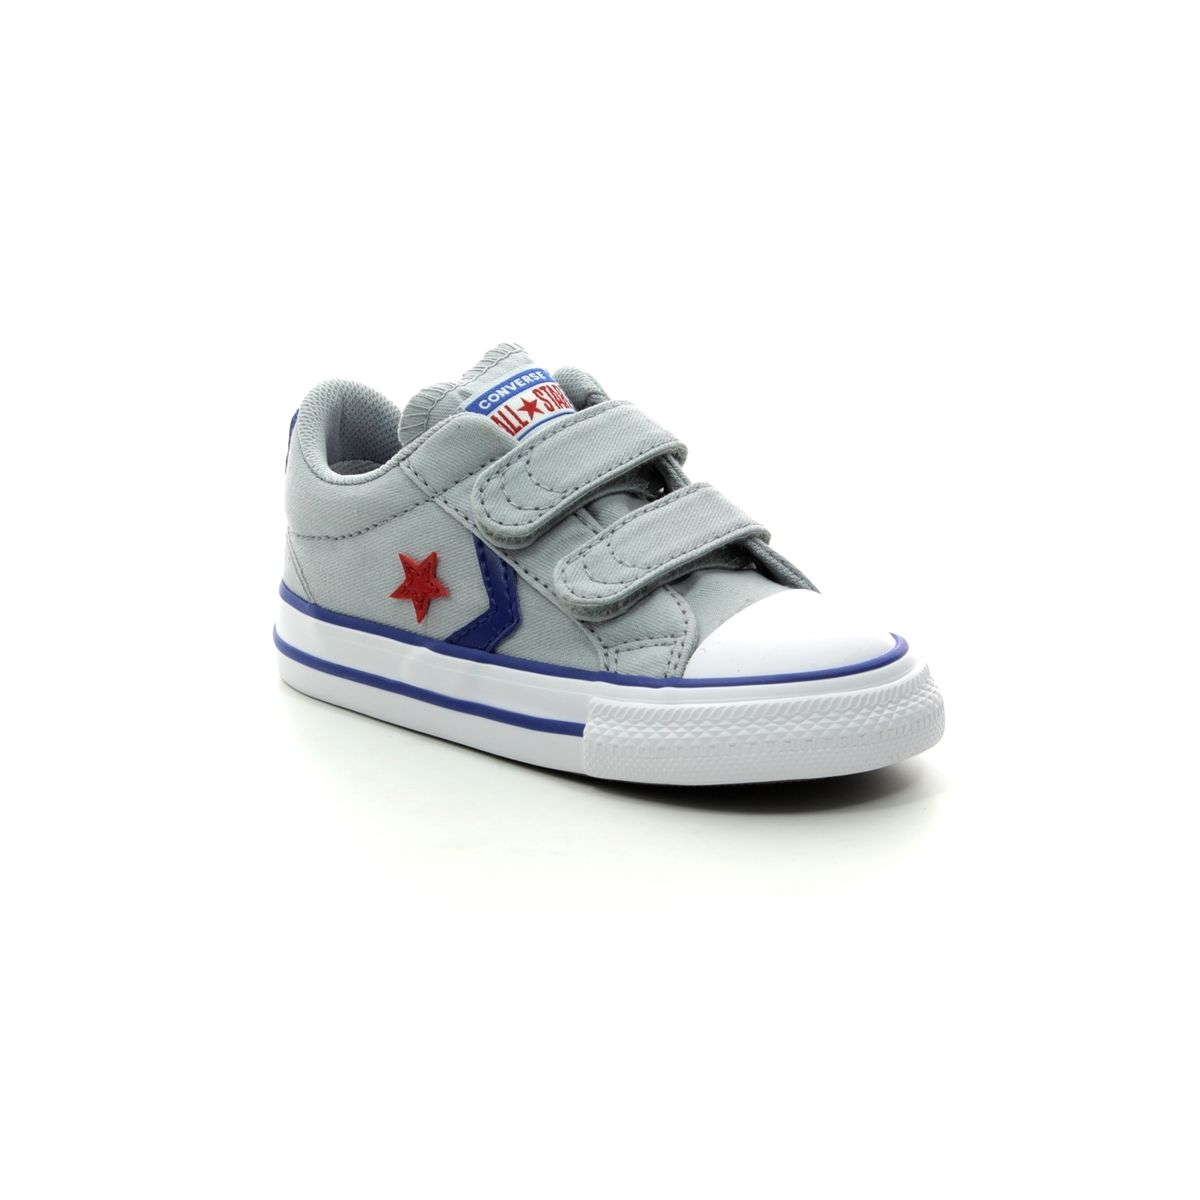 converse star player 2v